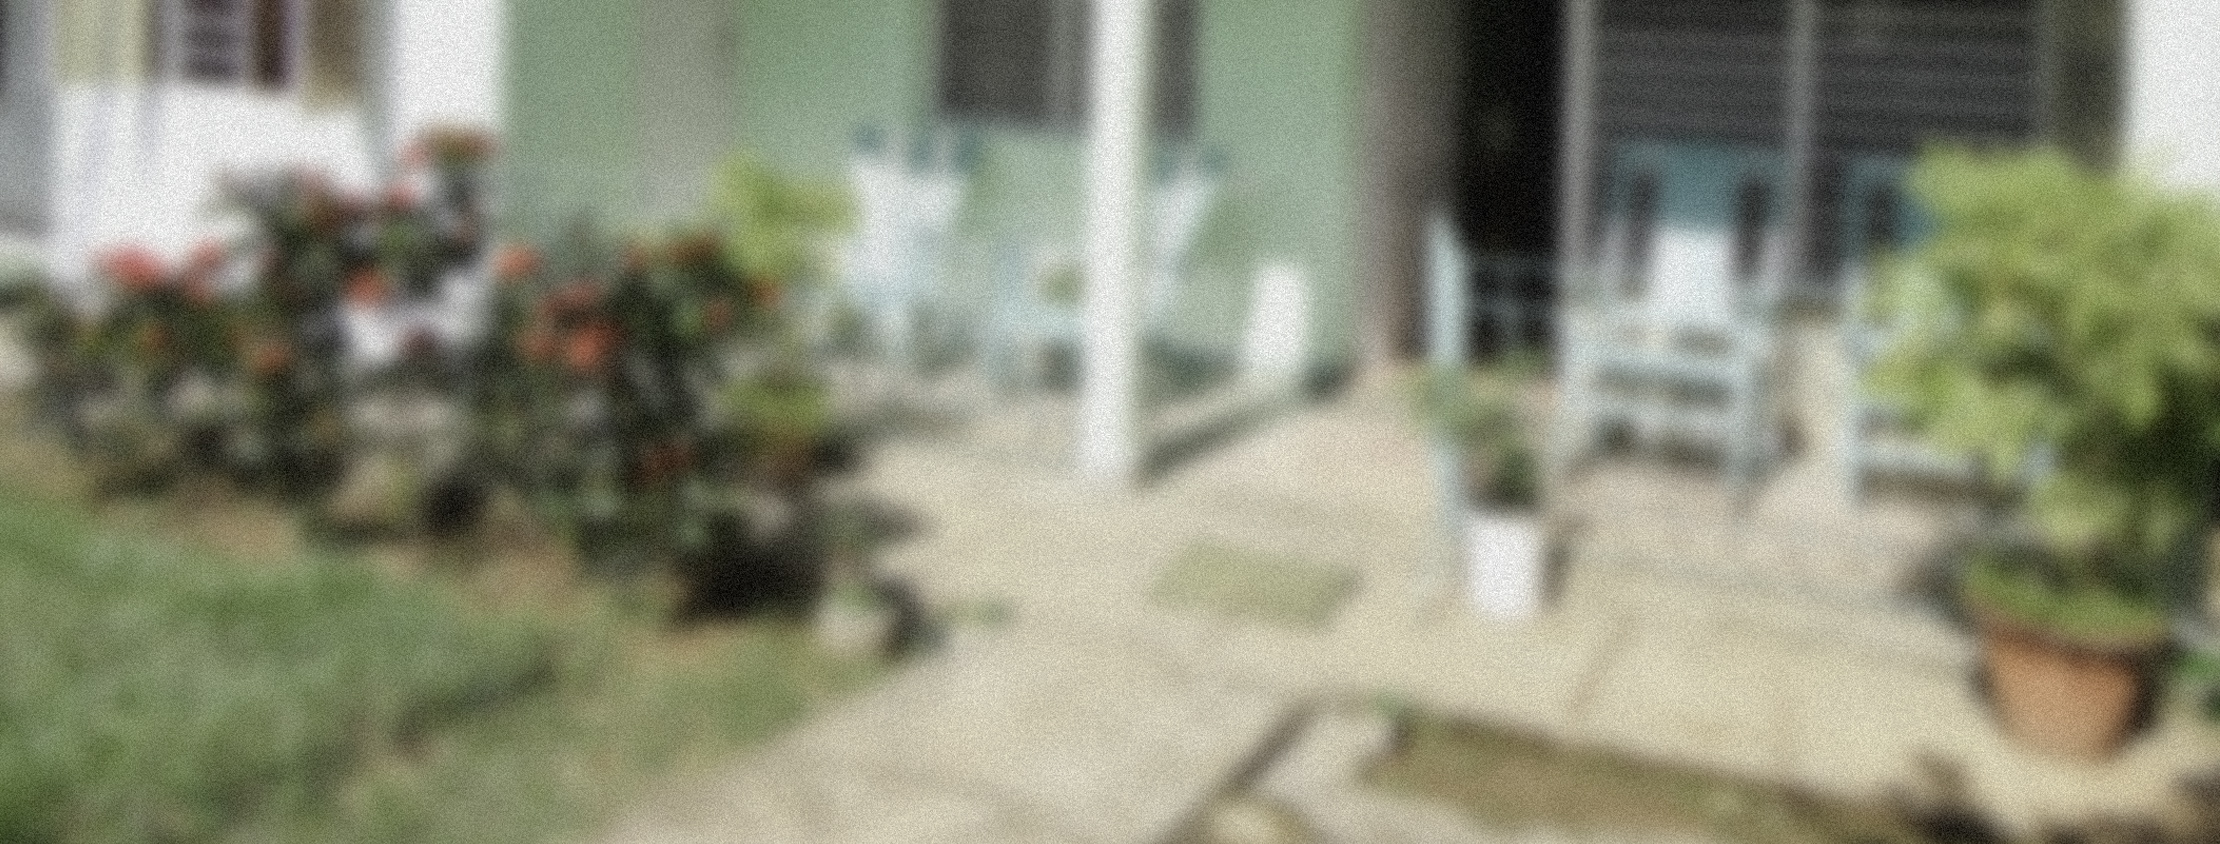 Blurred photograph of a patio